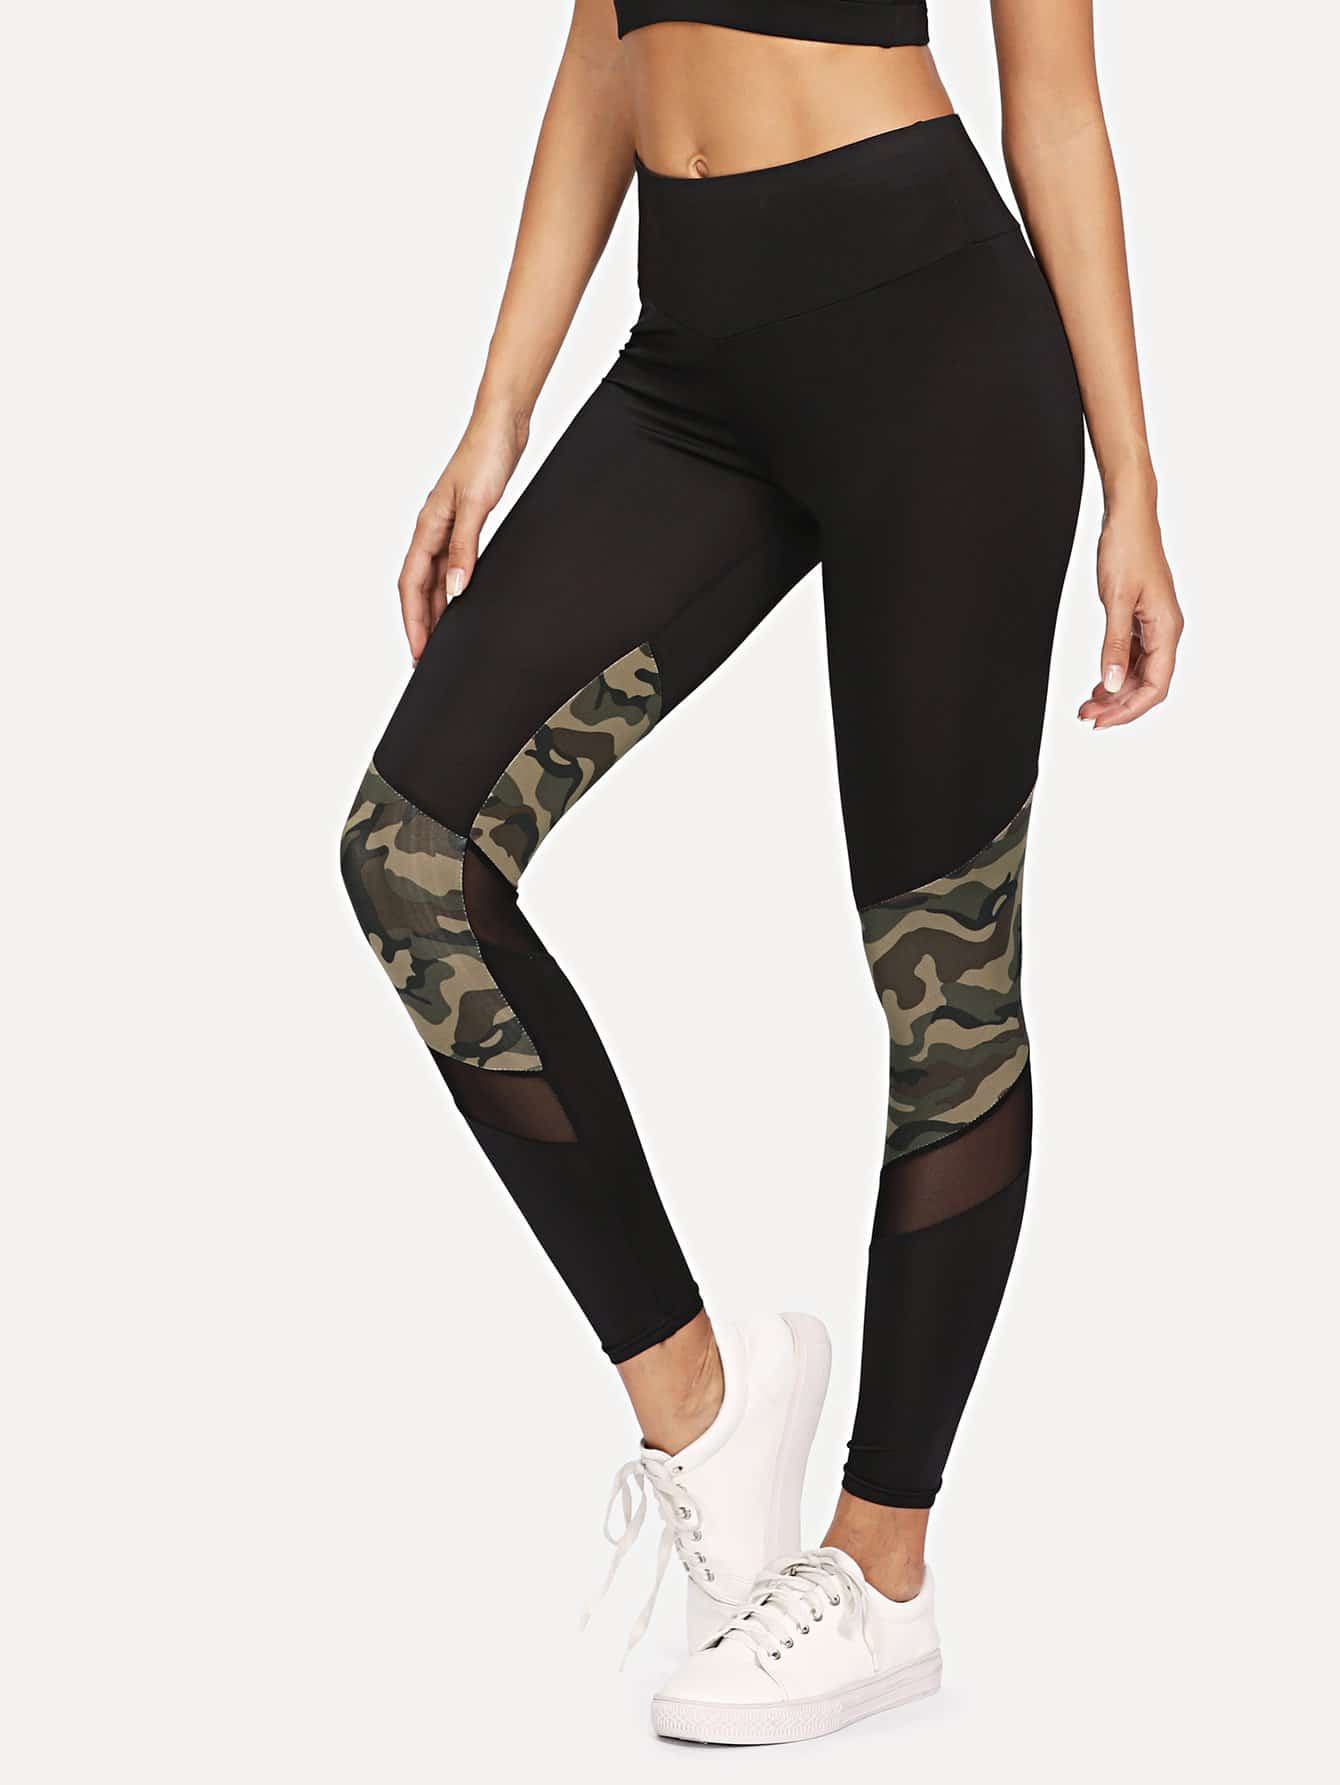 Contrast Camo Mesh Insert Leggings side panel mesh insert camo leggings